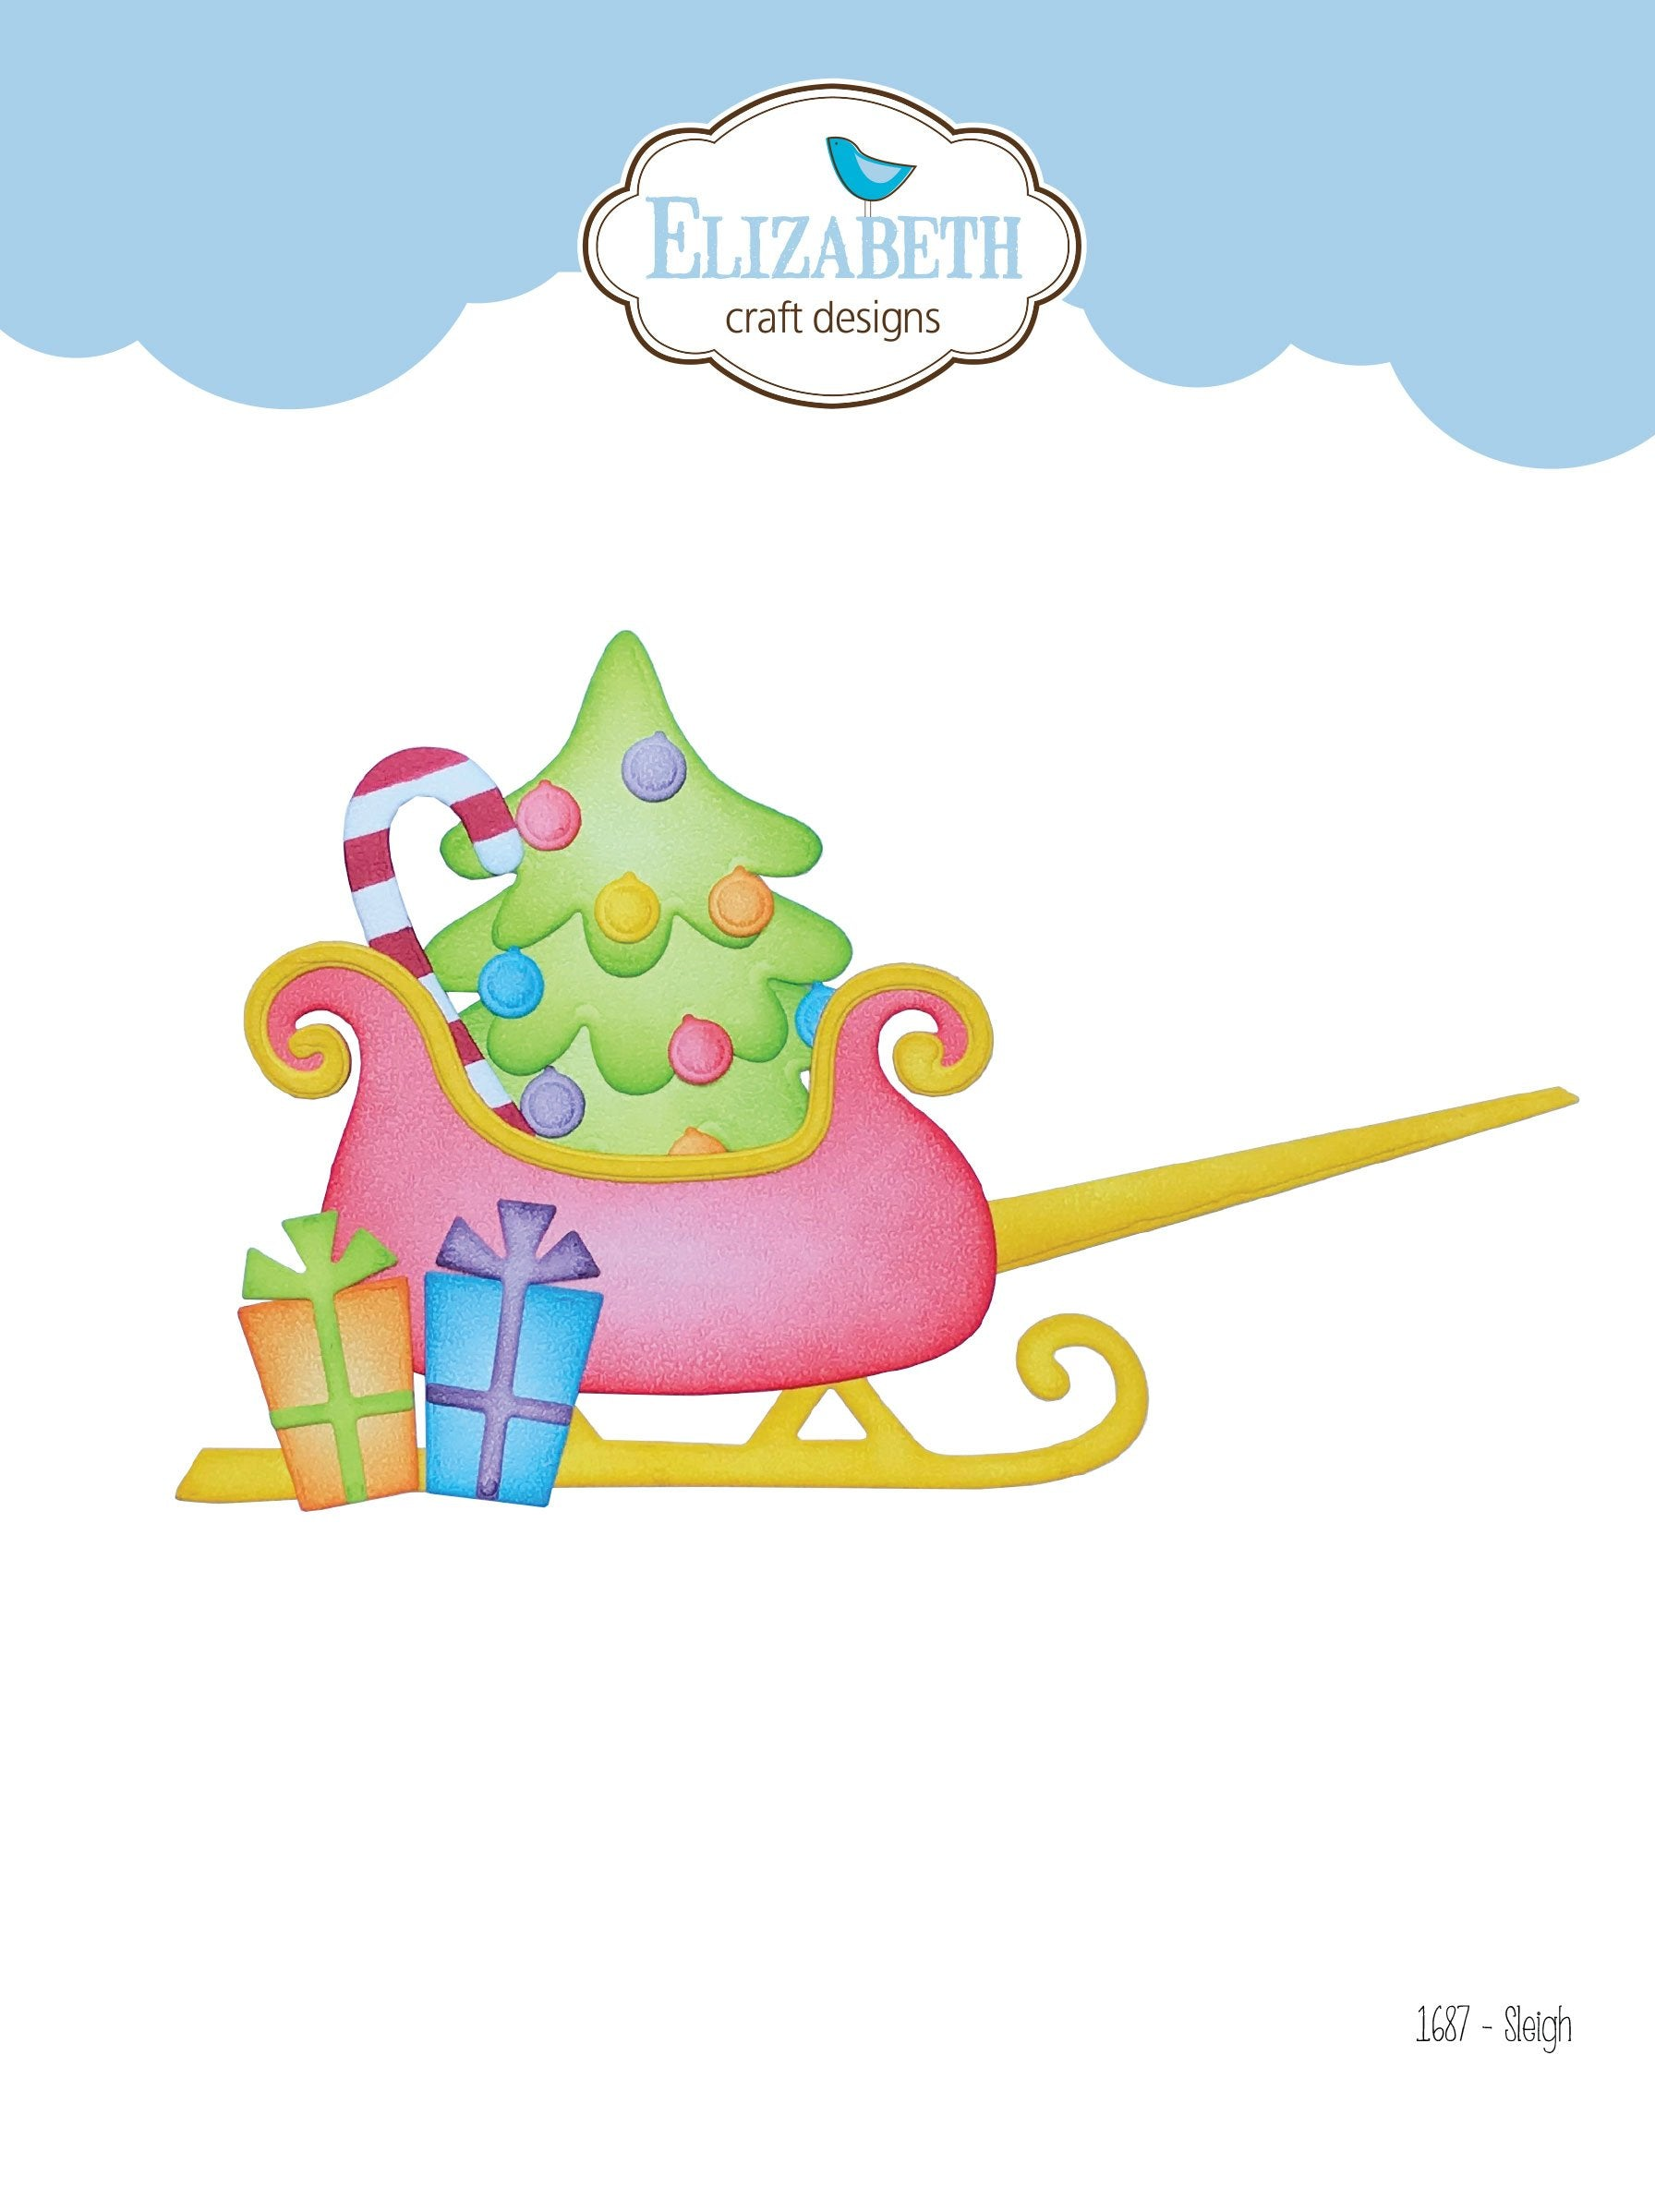 Elizabeth Craft Designs - Dies - Sleigh